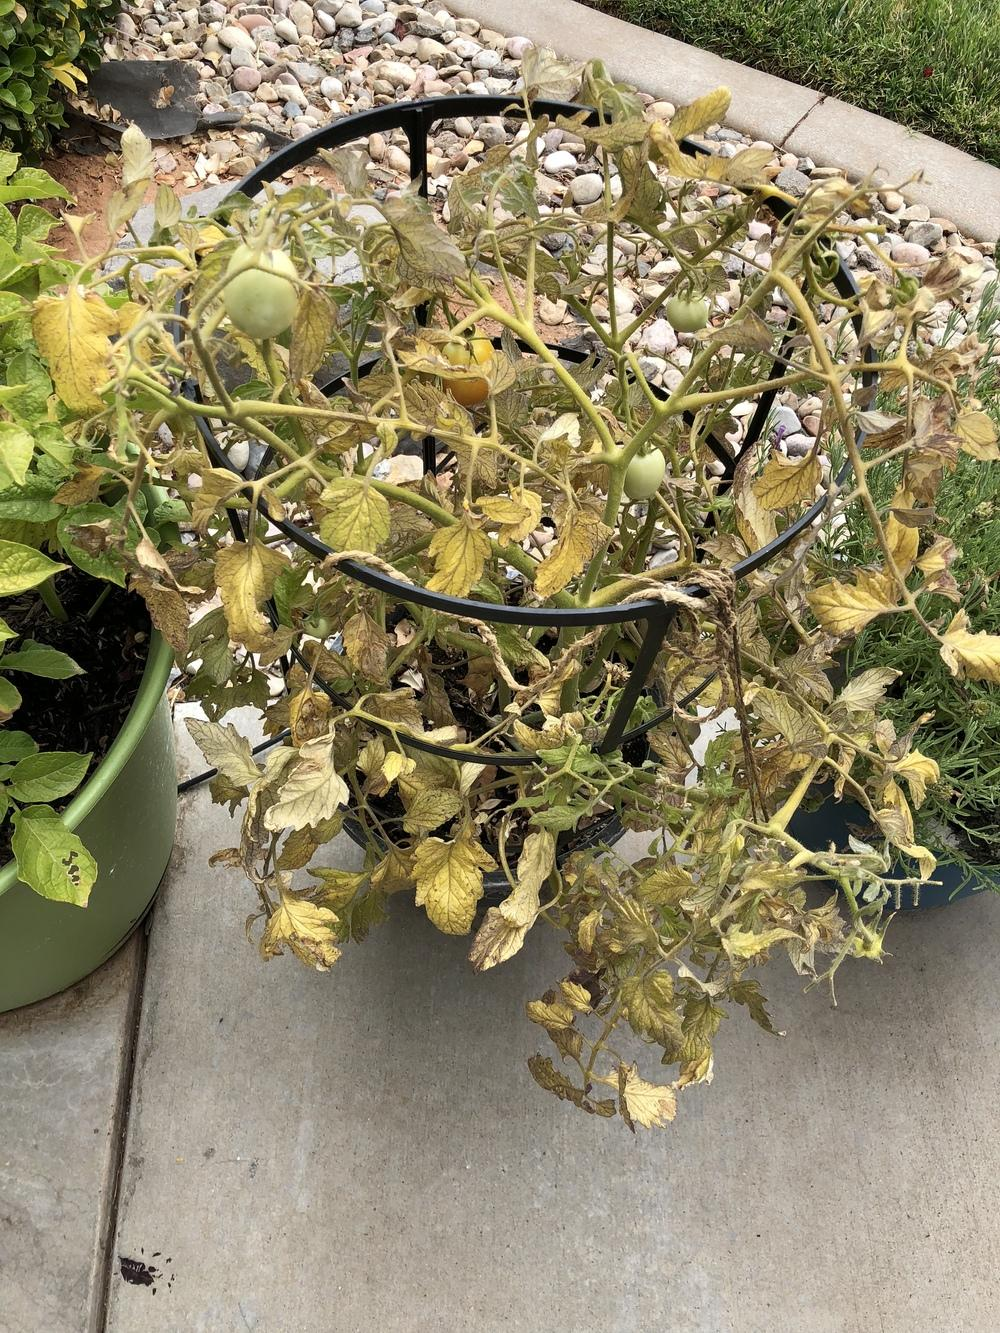 Vegetables and Fruit forum: My tomato plant is seriously sick ...